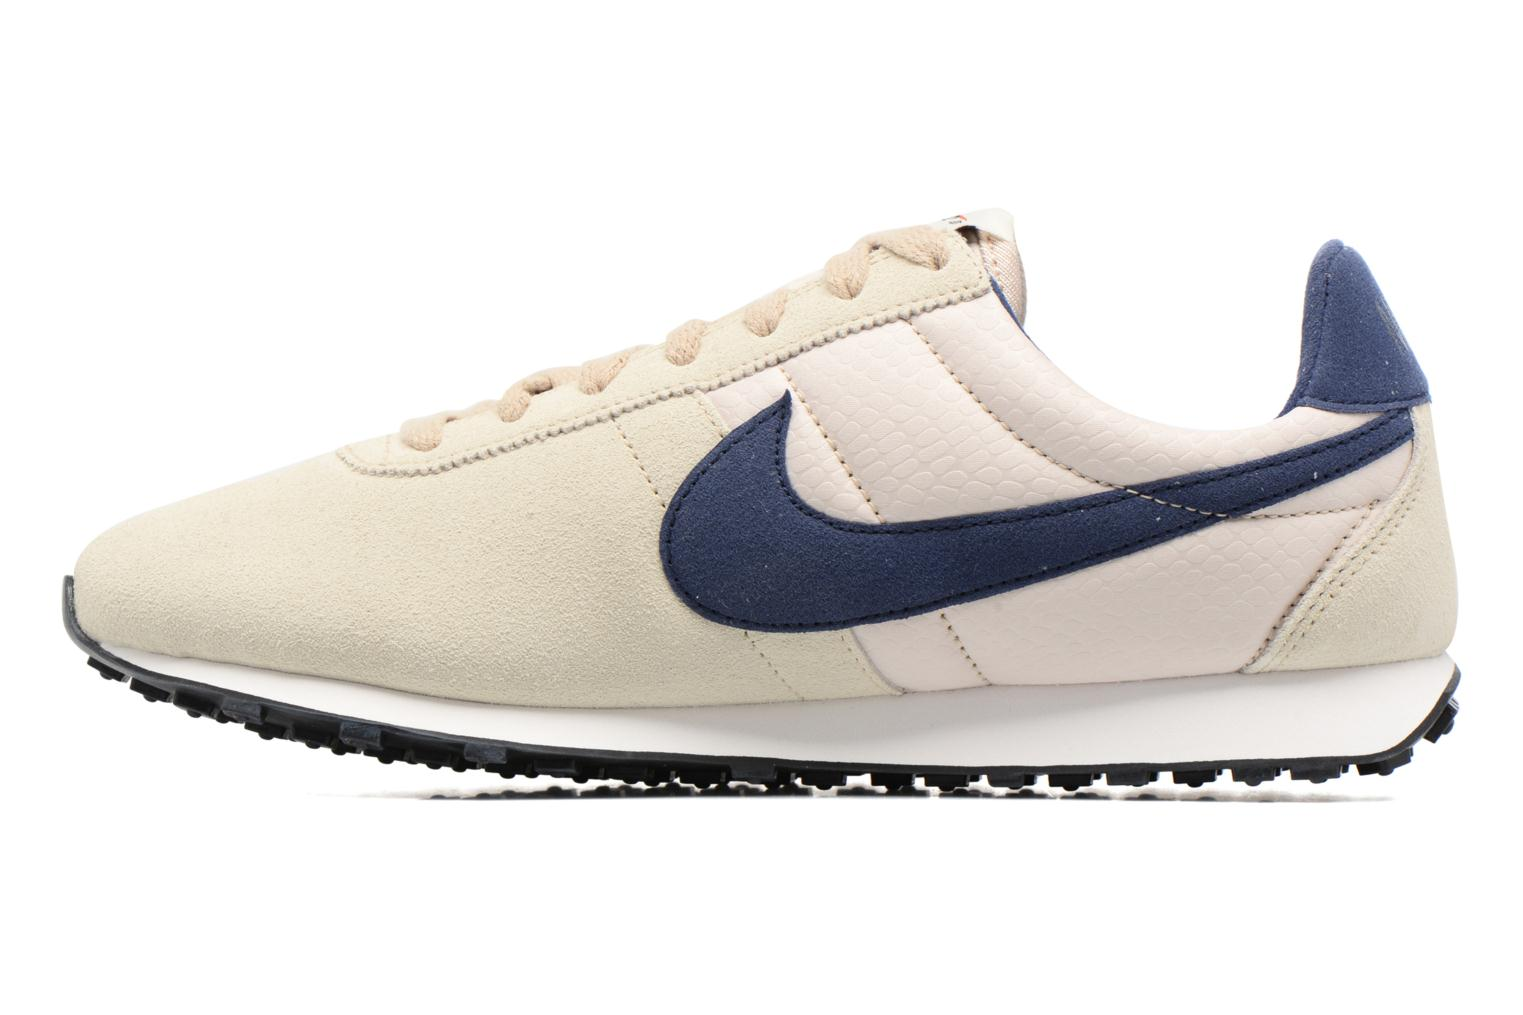 W Pre Montreal Racer Vntg Oatmeal/Binary Blue-Sail-Black